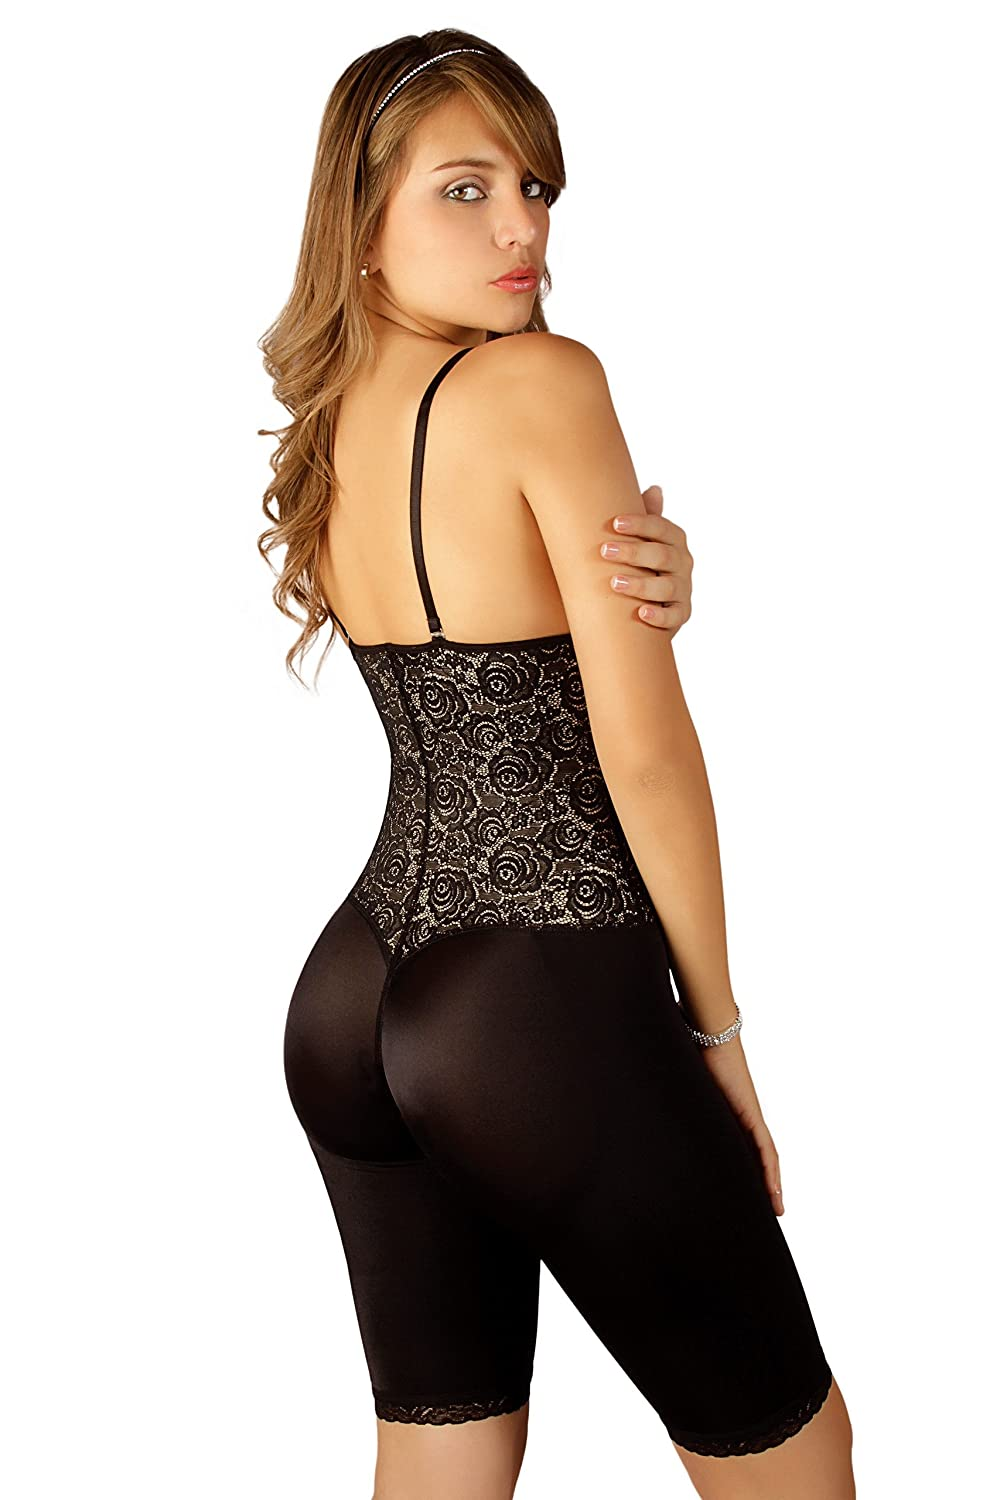 653626fd3f3 Vedette 508 Women s Coco Strapless Mid Thigh Full Body Shaper at Amazon  Women s Clothing store